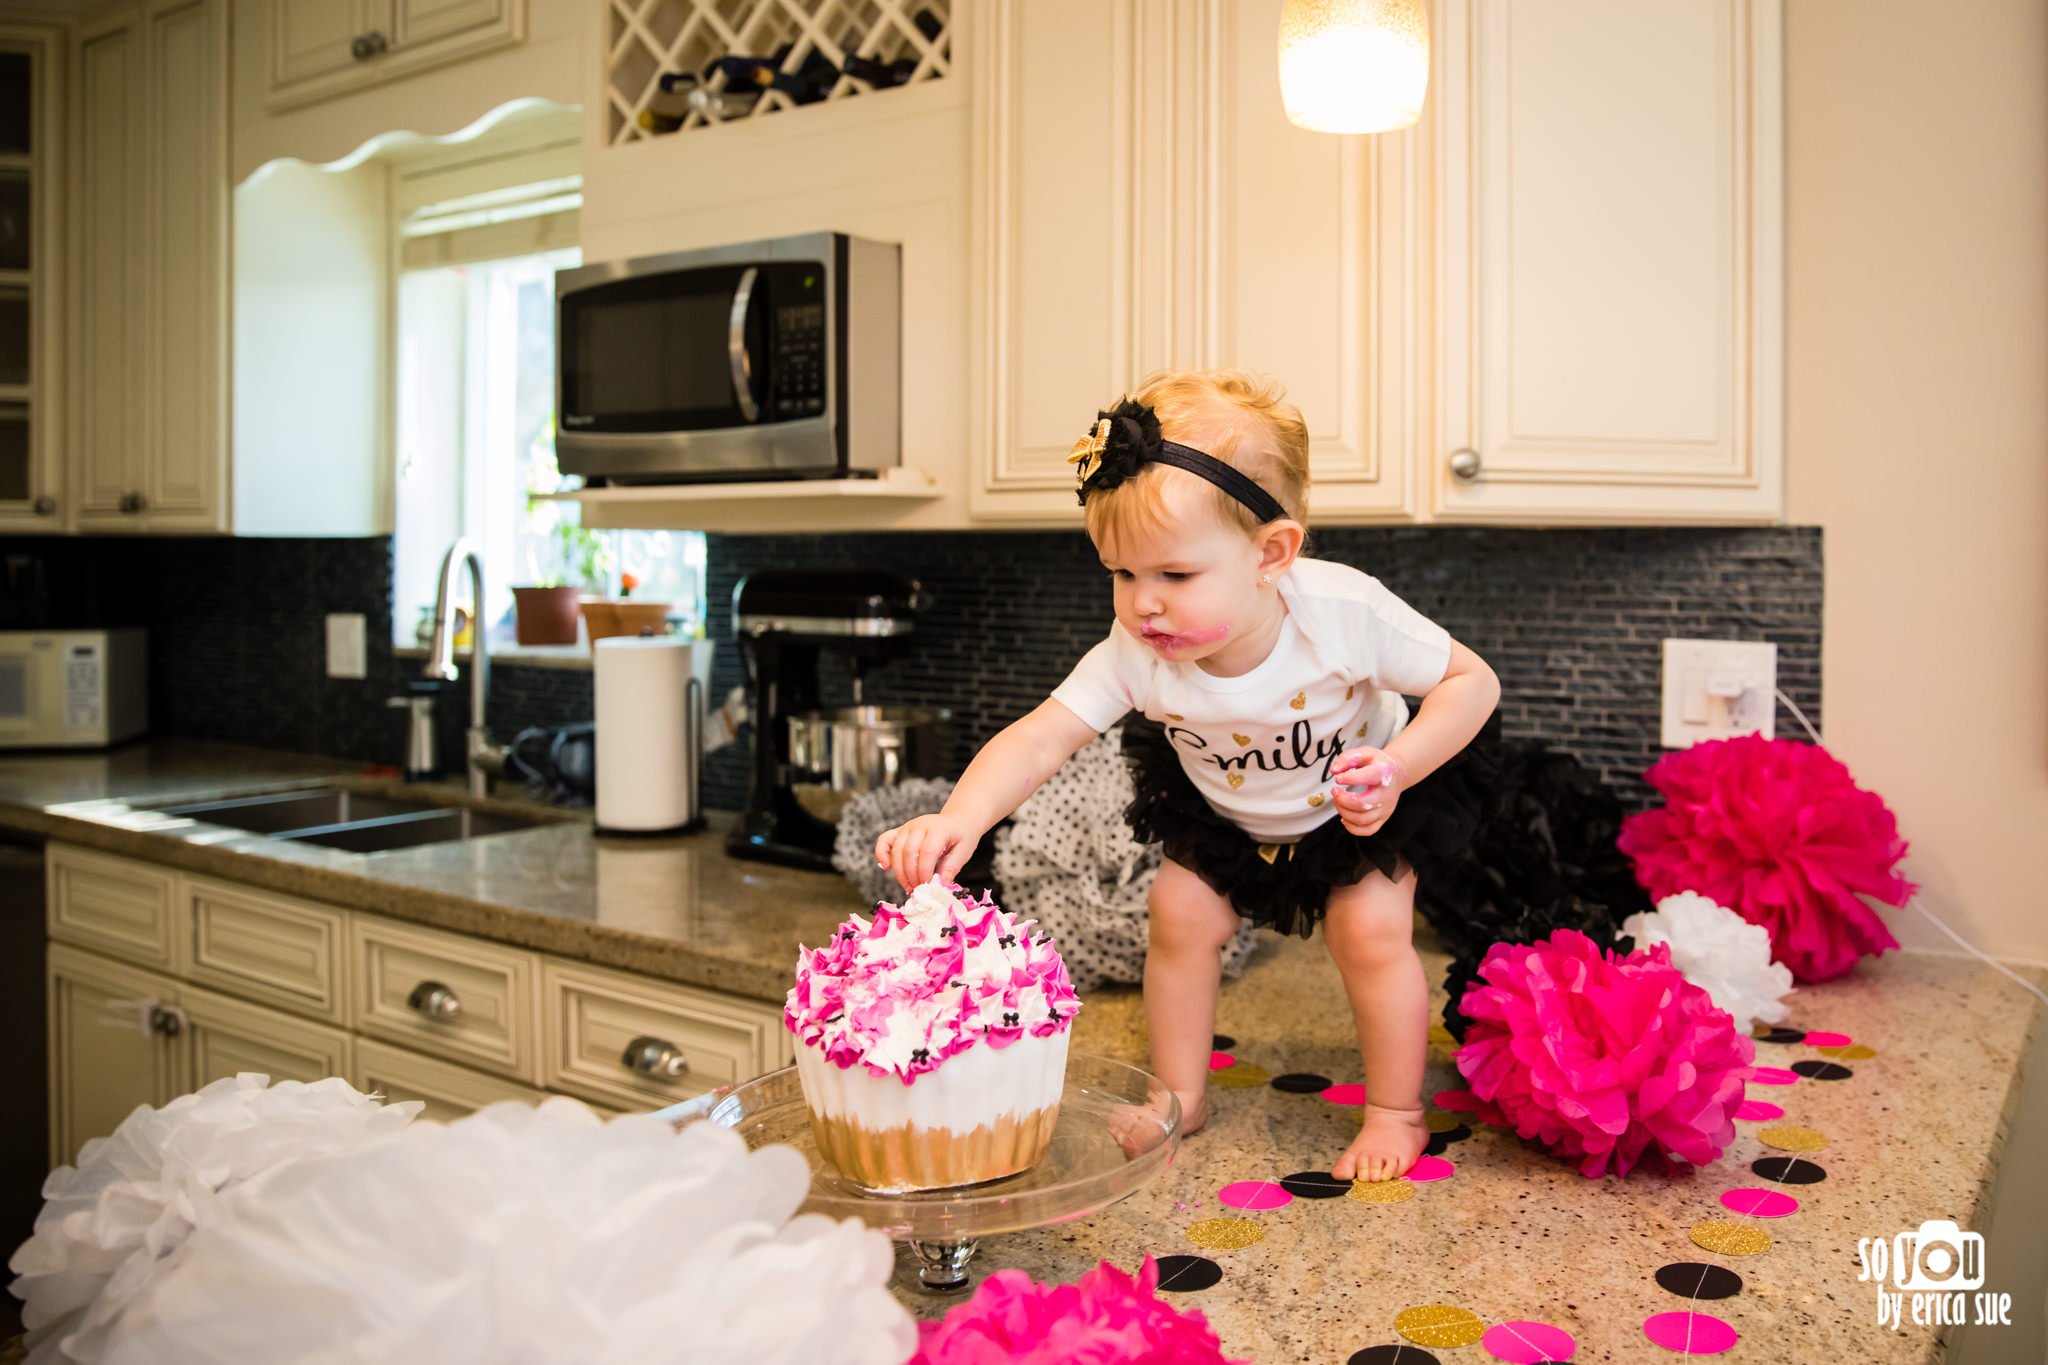 so-you-by-erica-sue-hollywood-fl-photographer-in-home-lifestyle-1st-birthday-cake-smash-3945.jpg